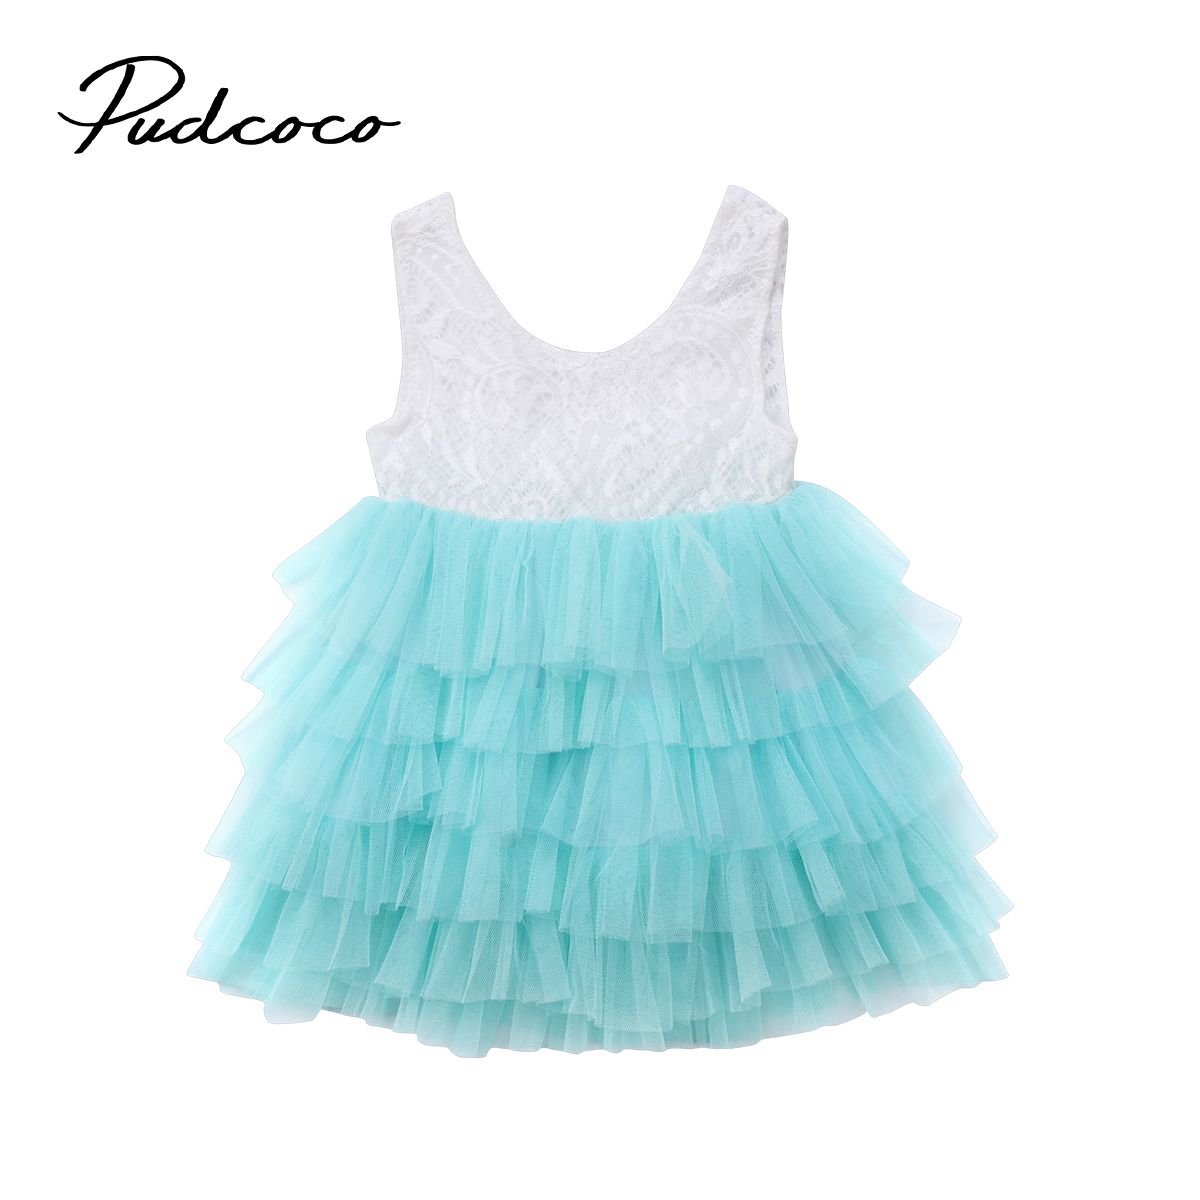 New Formal Kid Baby Girl Sleeveless Lace Tulle Tutu Dress Party Pageant Wedding Princess Backless Mesh Cake Dresses Vestidos hearted shape back summer new princess girl s lace christening white big bowknot mesh sleeveless show performance formal dress